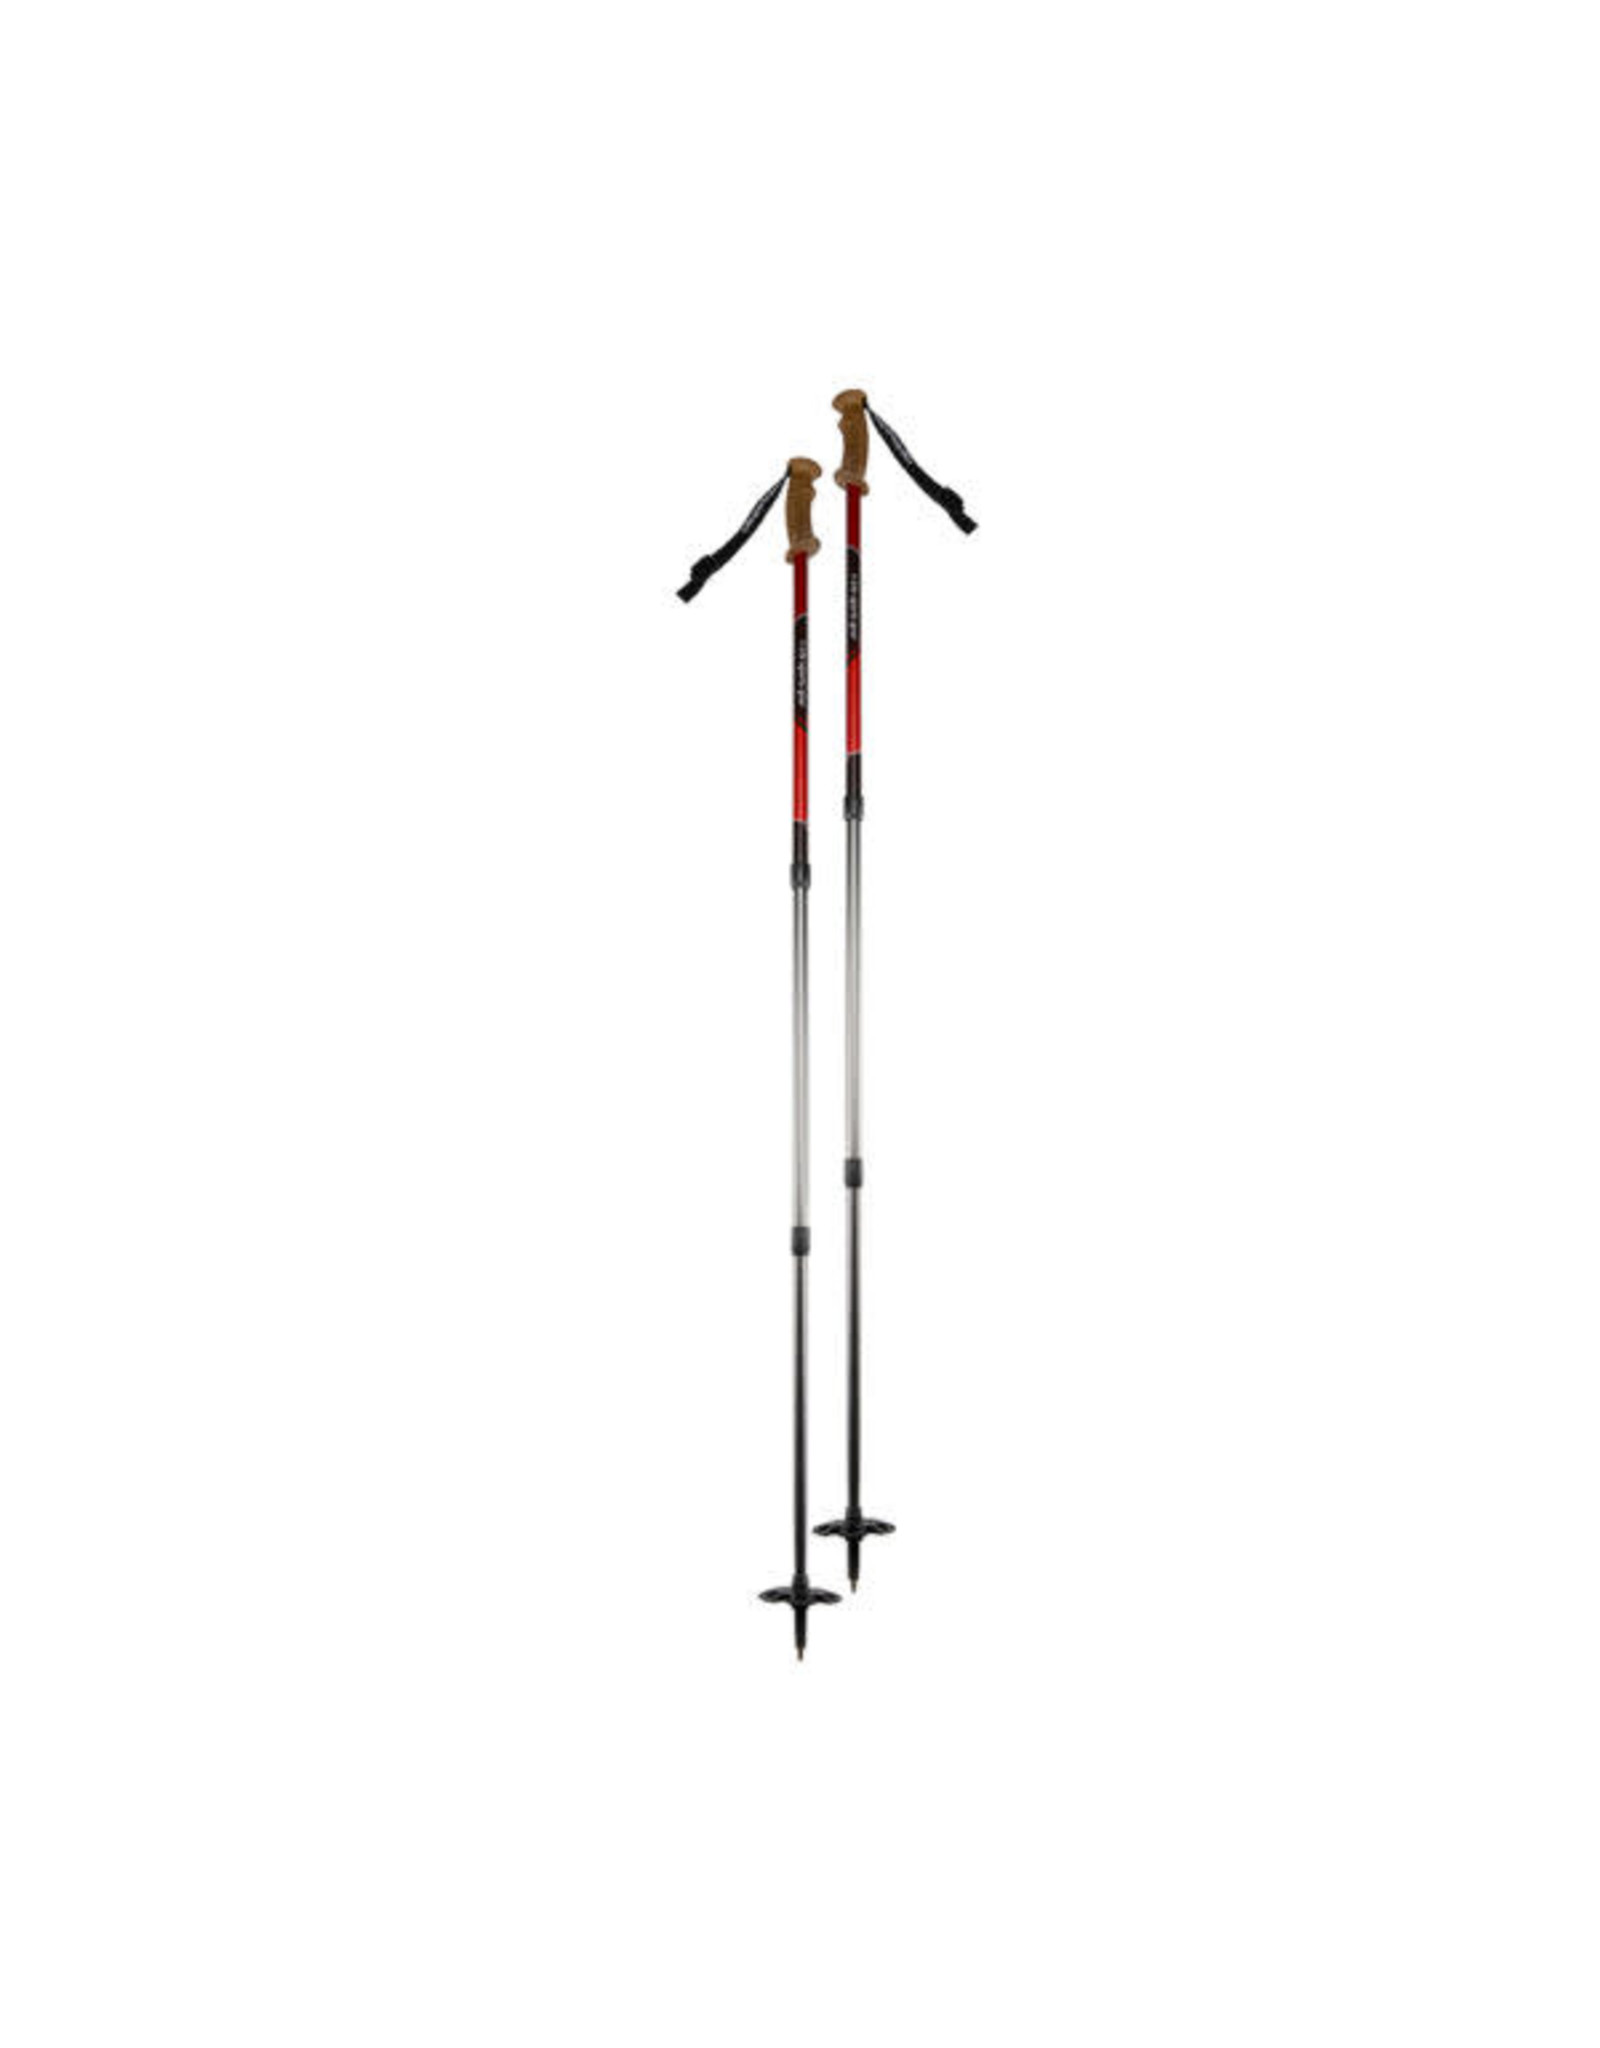 Life Sports Gear EASY TRAIL outdoor retractable pole